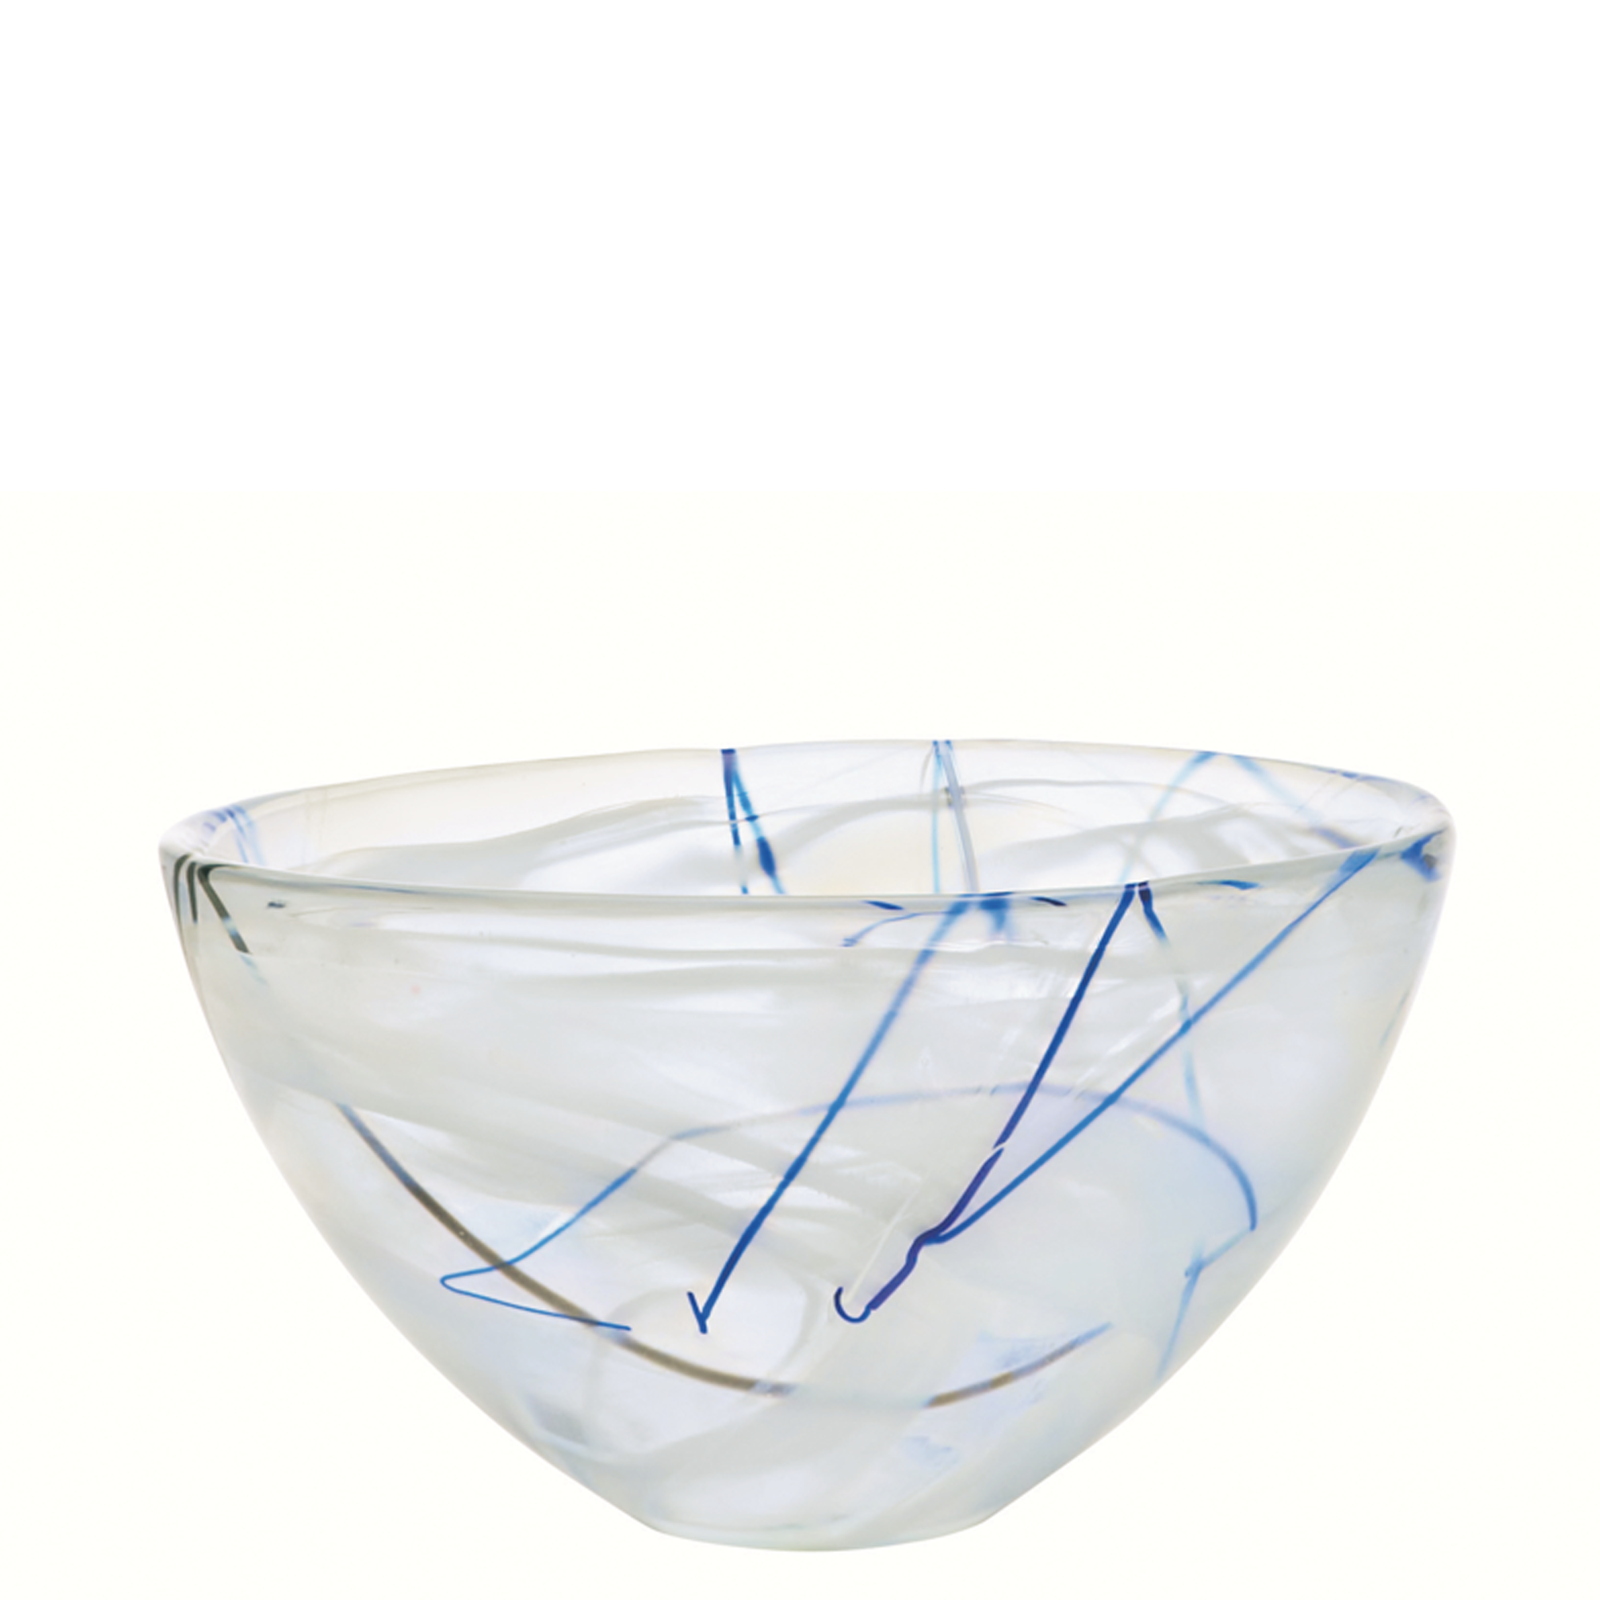 Kosta Boda Serveware White Contrast Bowl, 3 Sizes